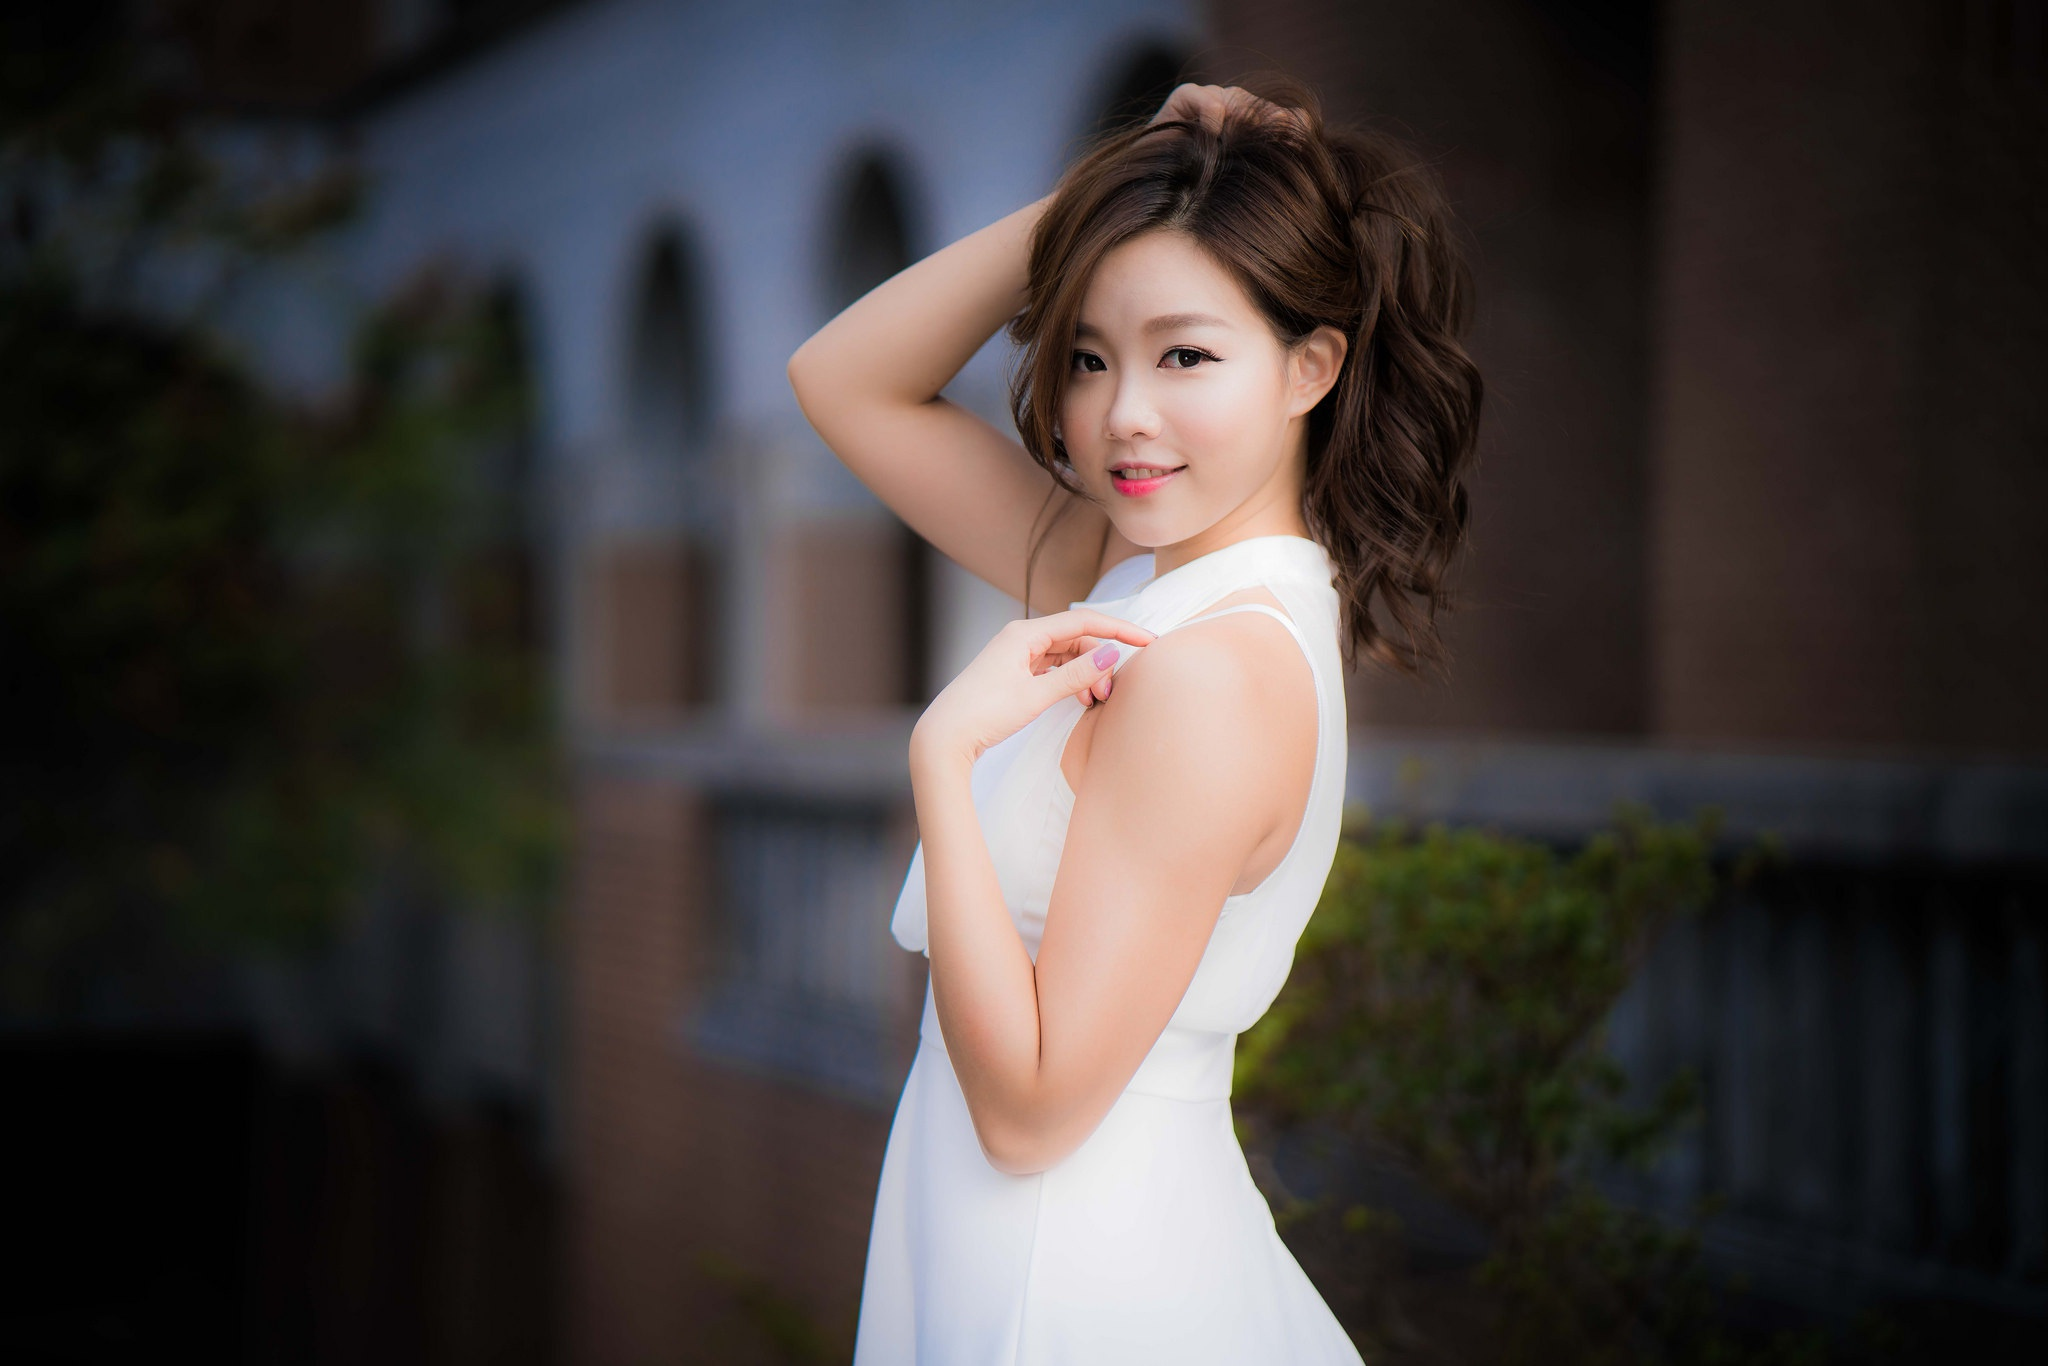 meadow vista single asian girls Single club meadow vista girl for hookups and dating in meadow vista.